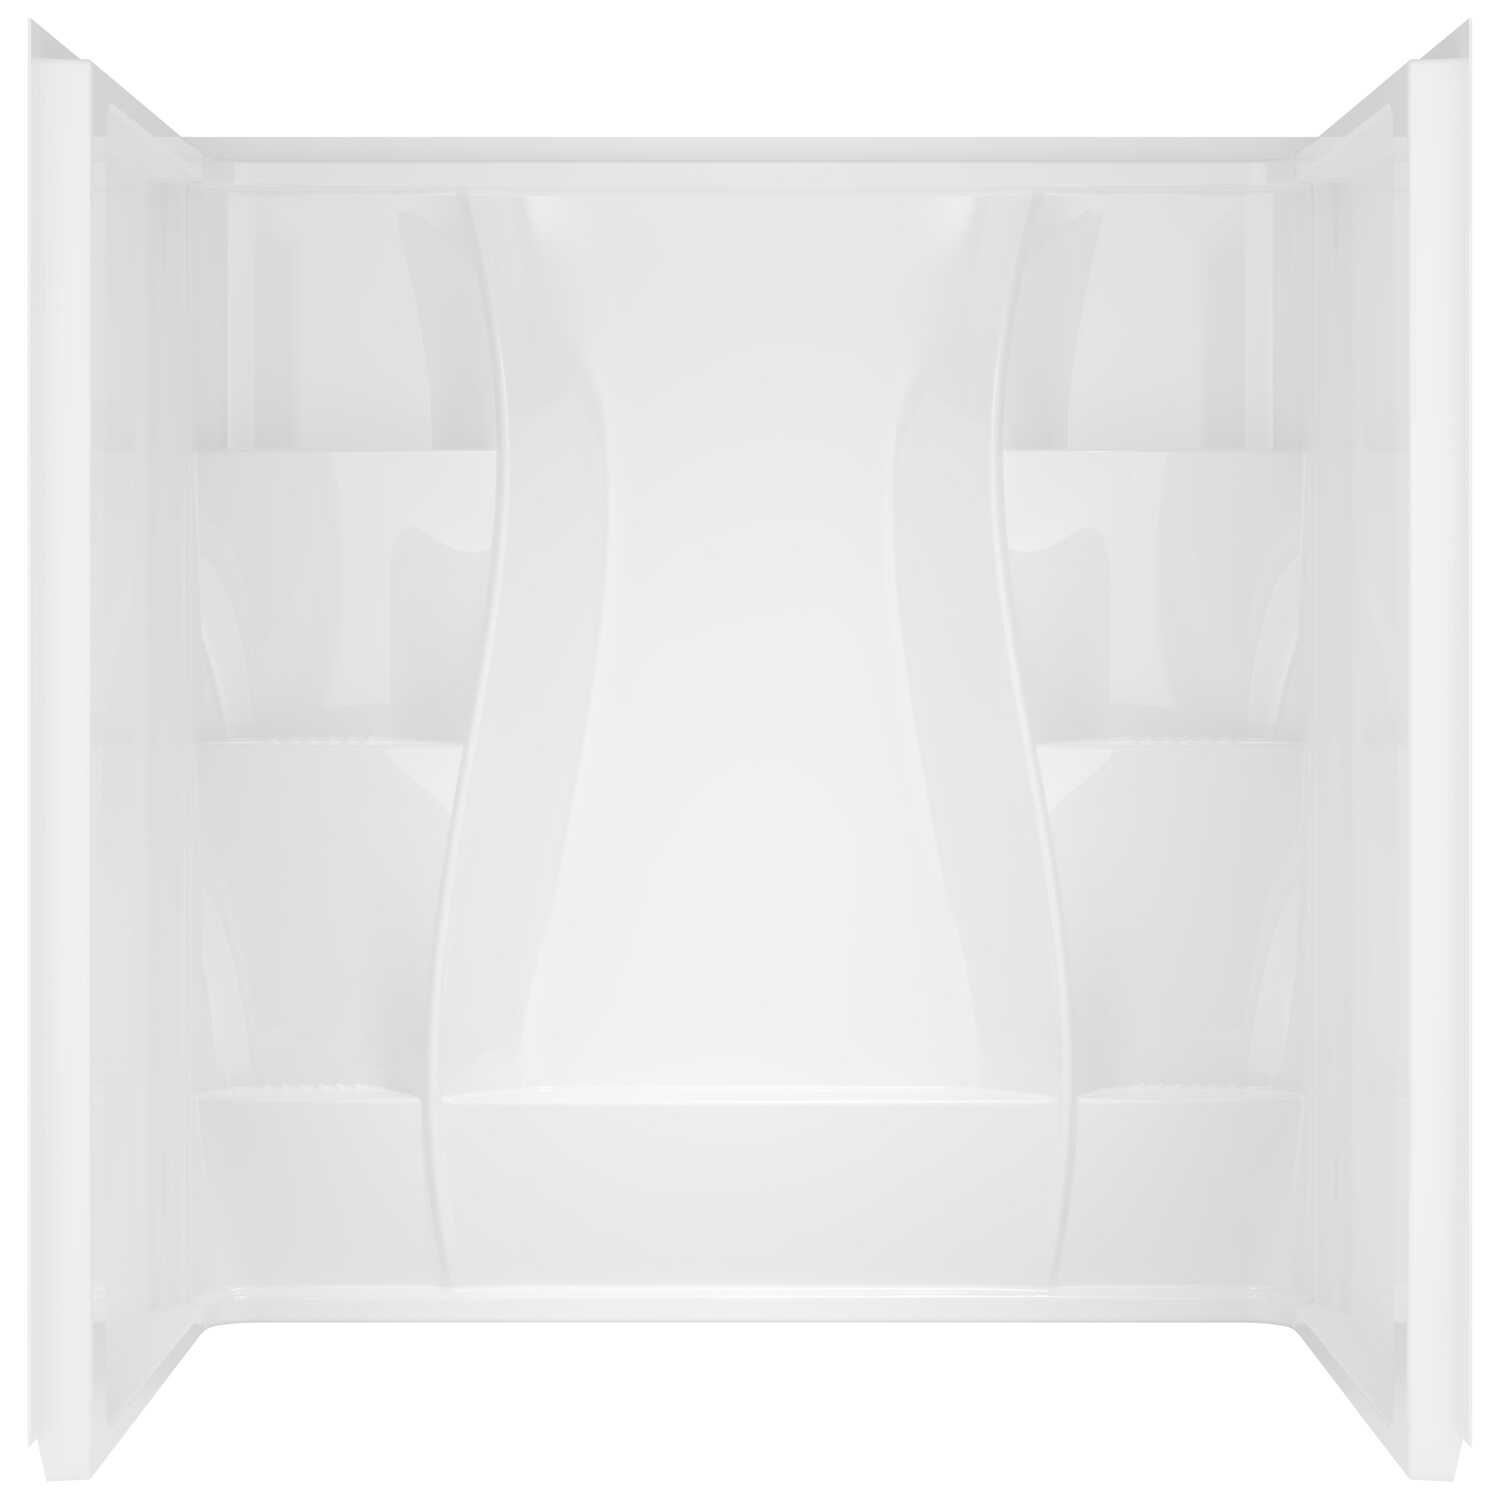 Delta Bathing System  74 in. H x 60 in. W x 32 in. L White  Acrylic  Reversible  Rectangular  Shower